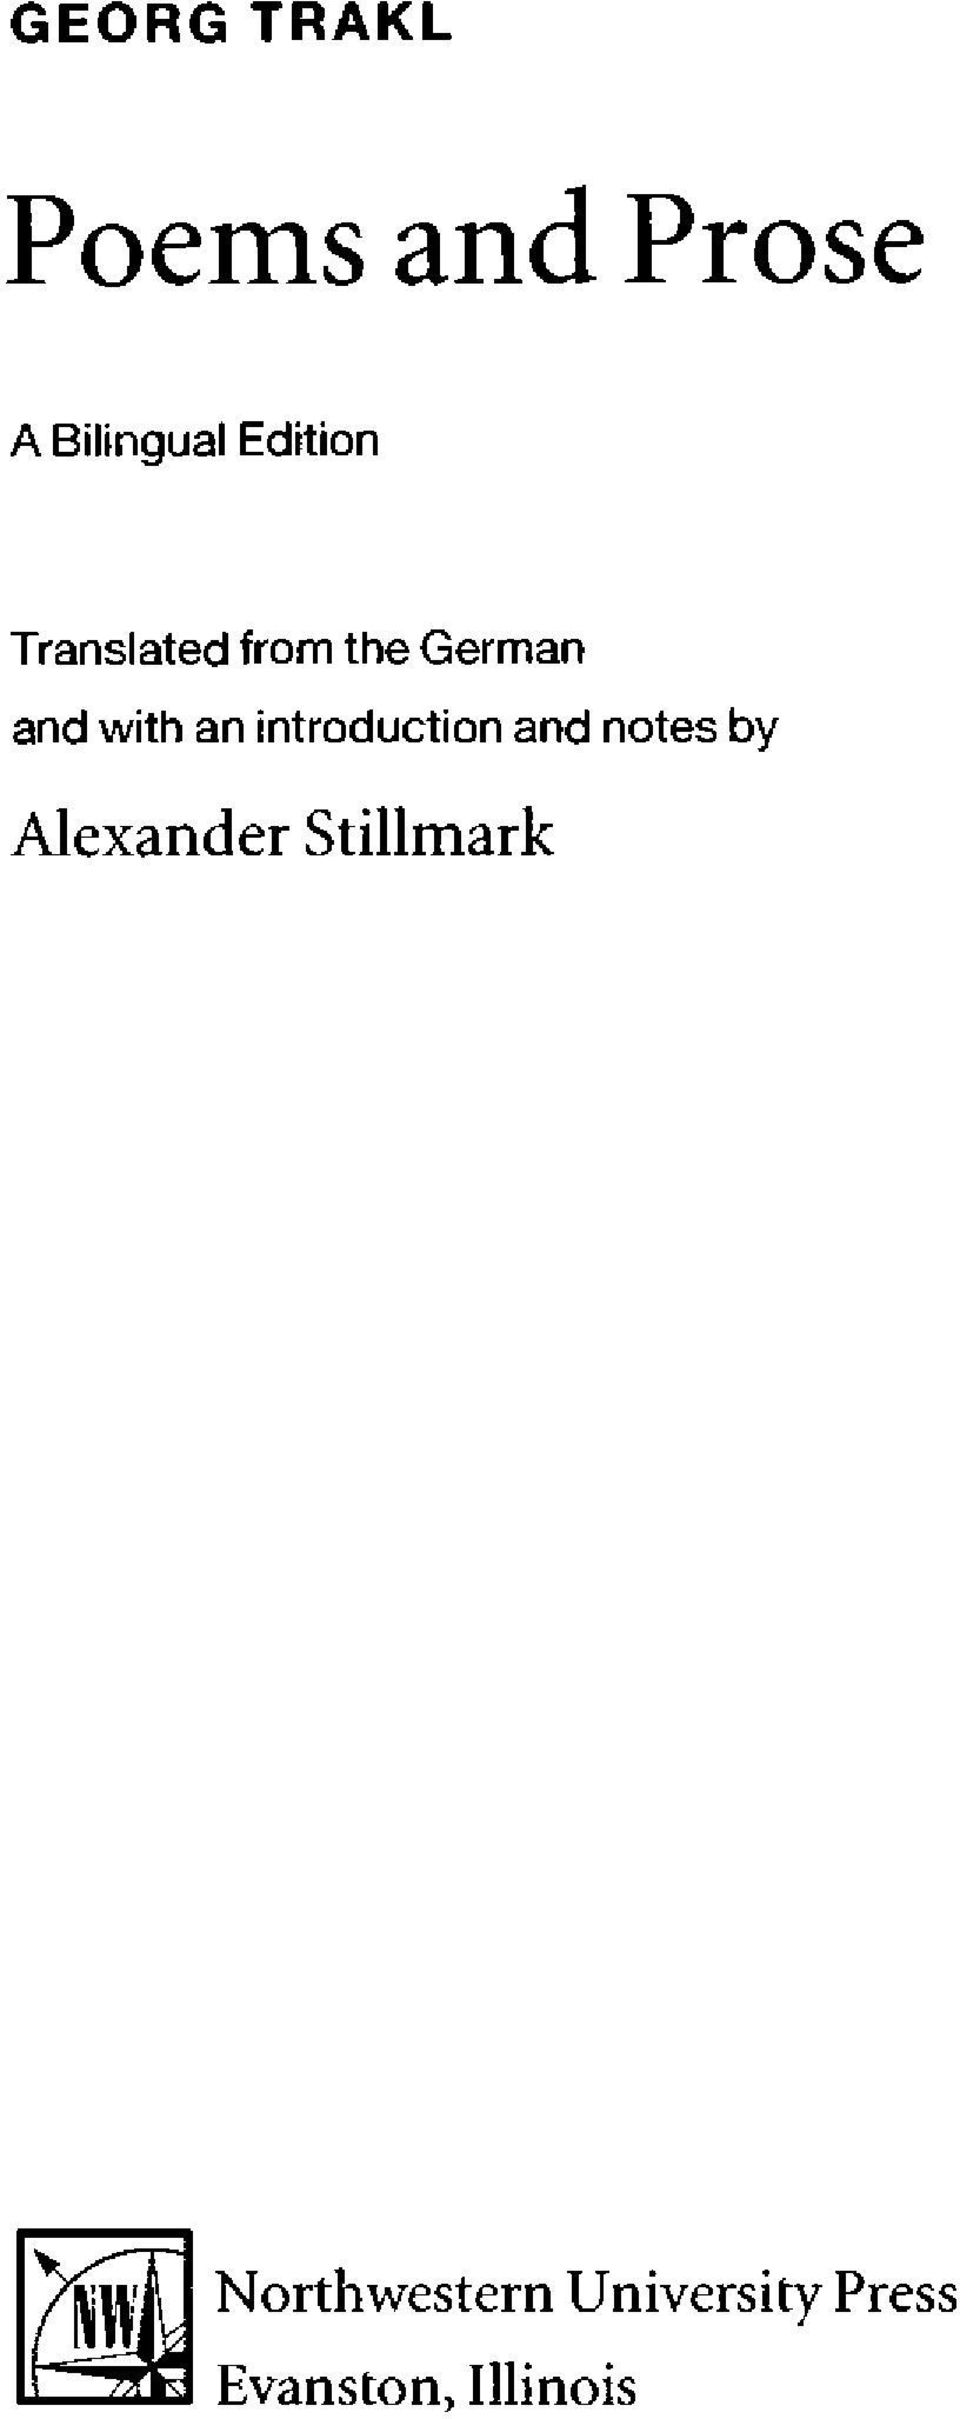 introduction and notes by Alexander Stillmark